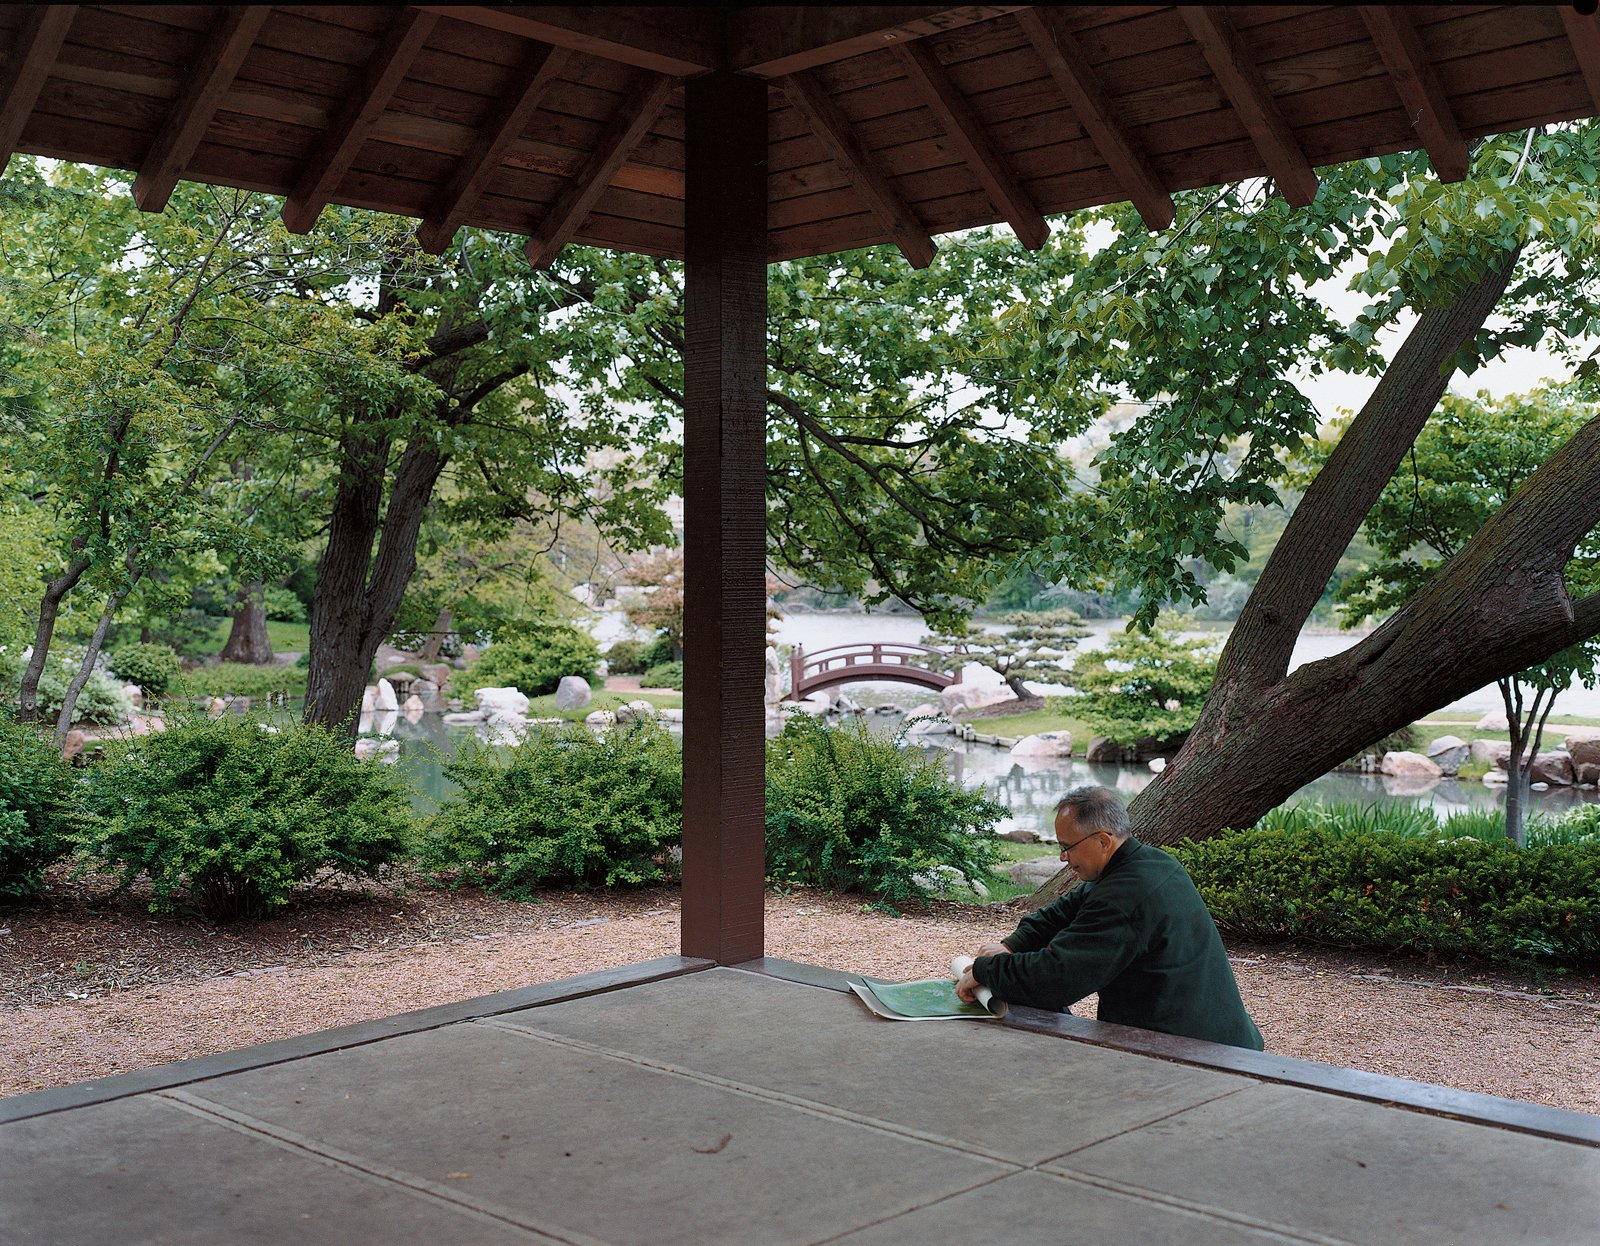 The Osaka Garden in Jackson Park provides a respite from the city.